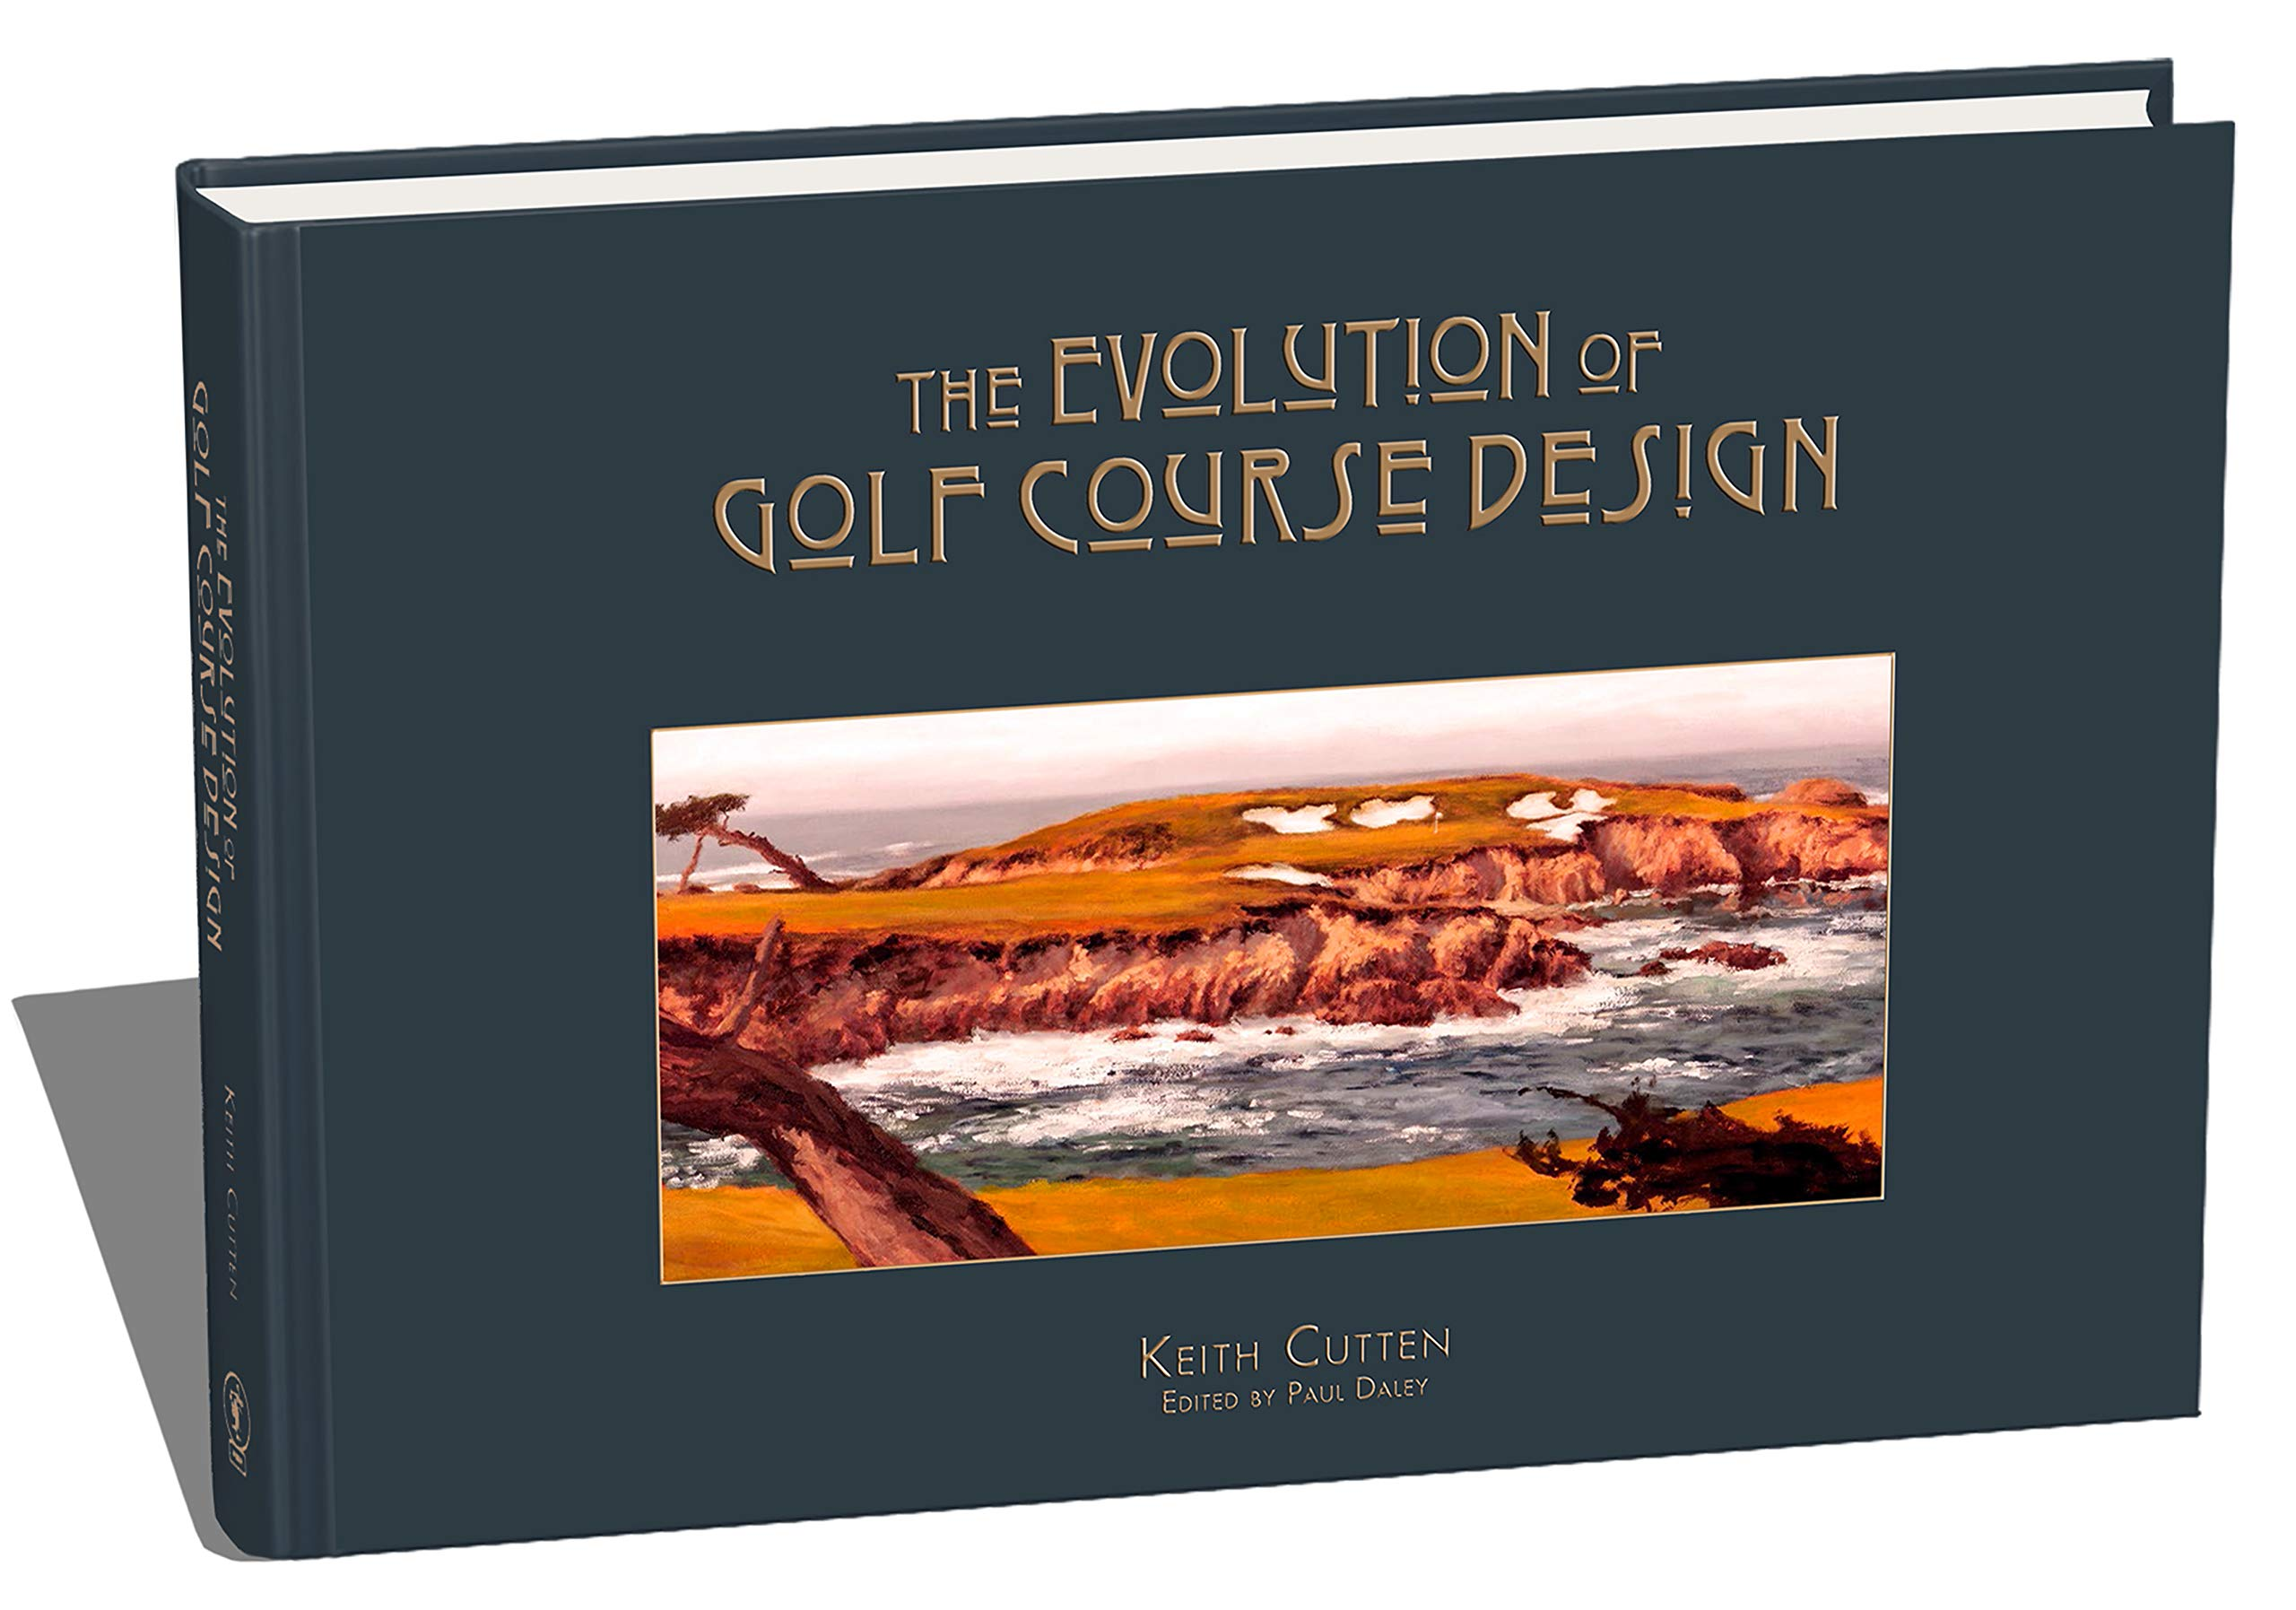 Image OfThe Evolution Of Golf Course Design By Keith Cutten / New, Epic Golf Course Architecture Book / The Perfect Gift For Every...